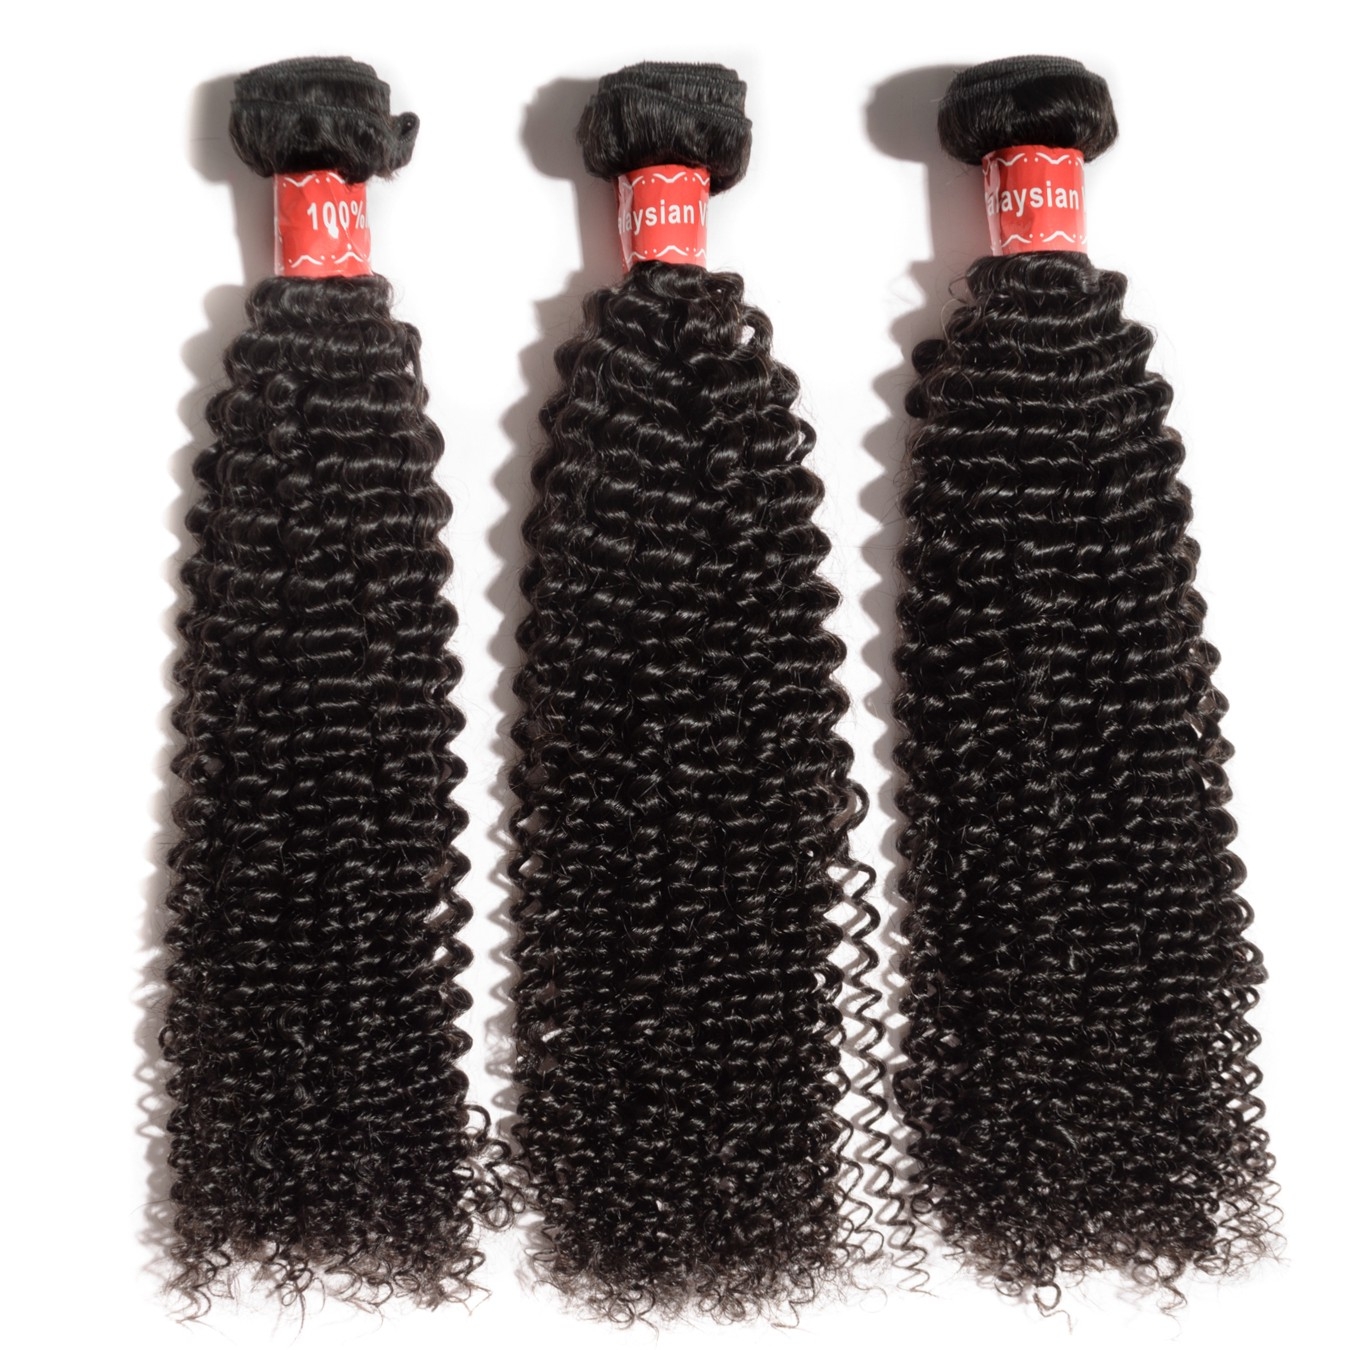 How To Choose The Best Hair Extension Vendors Tedhairreviews Medium